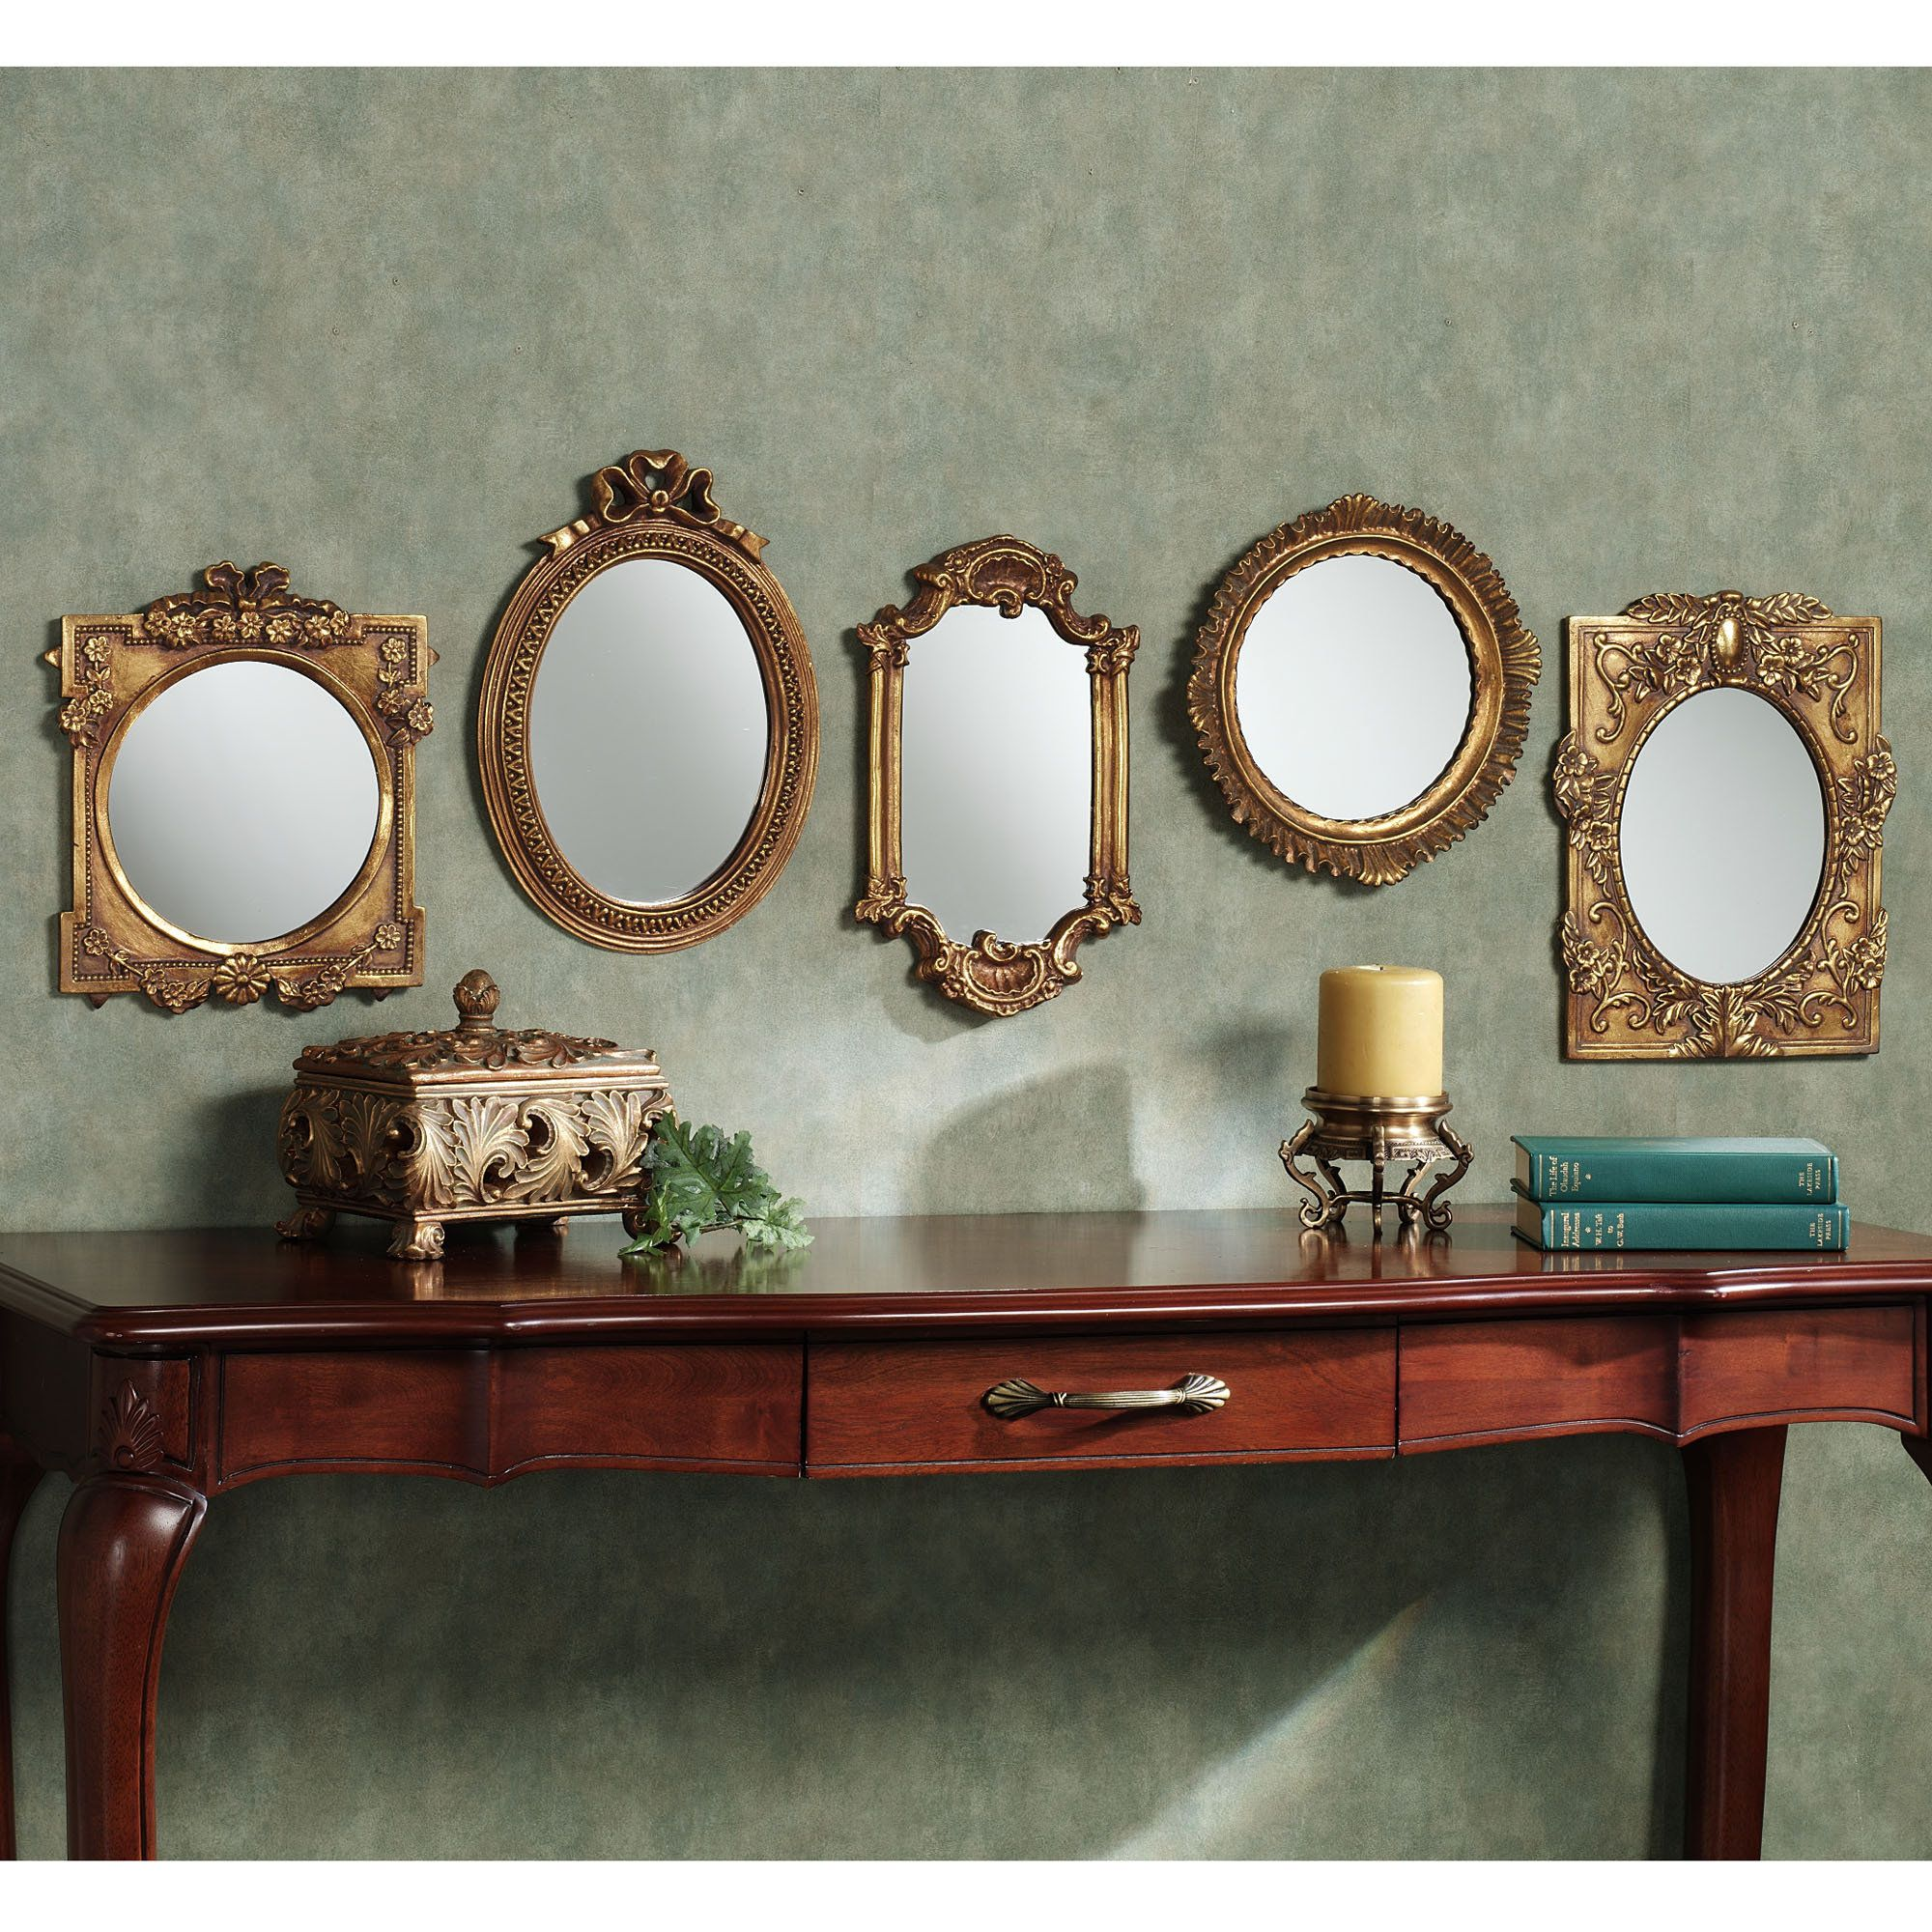 Timeless Tradition Decorative Wall Mirror Set | Home > Walls ...